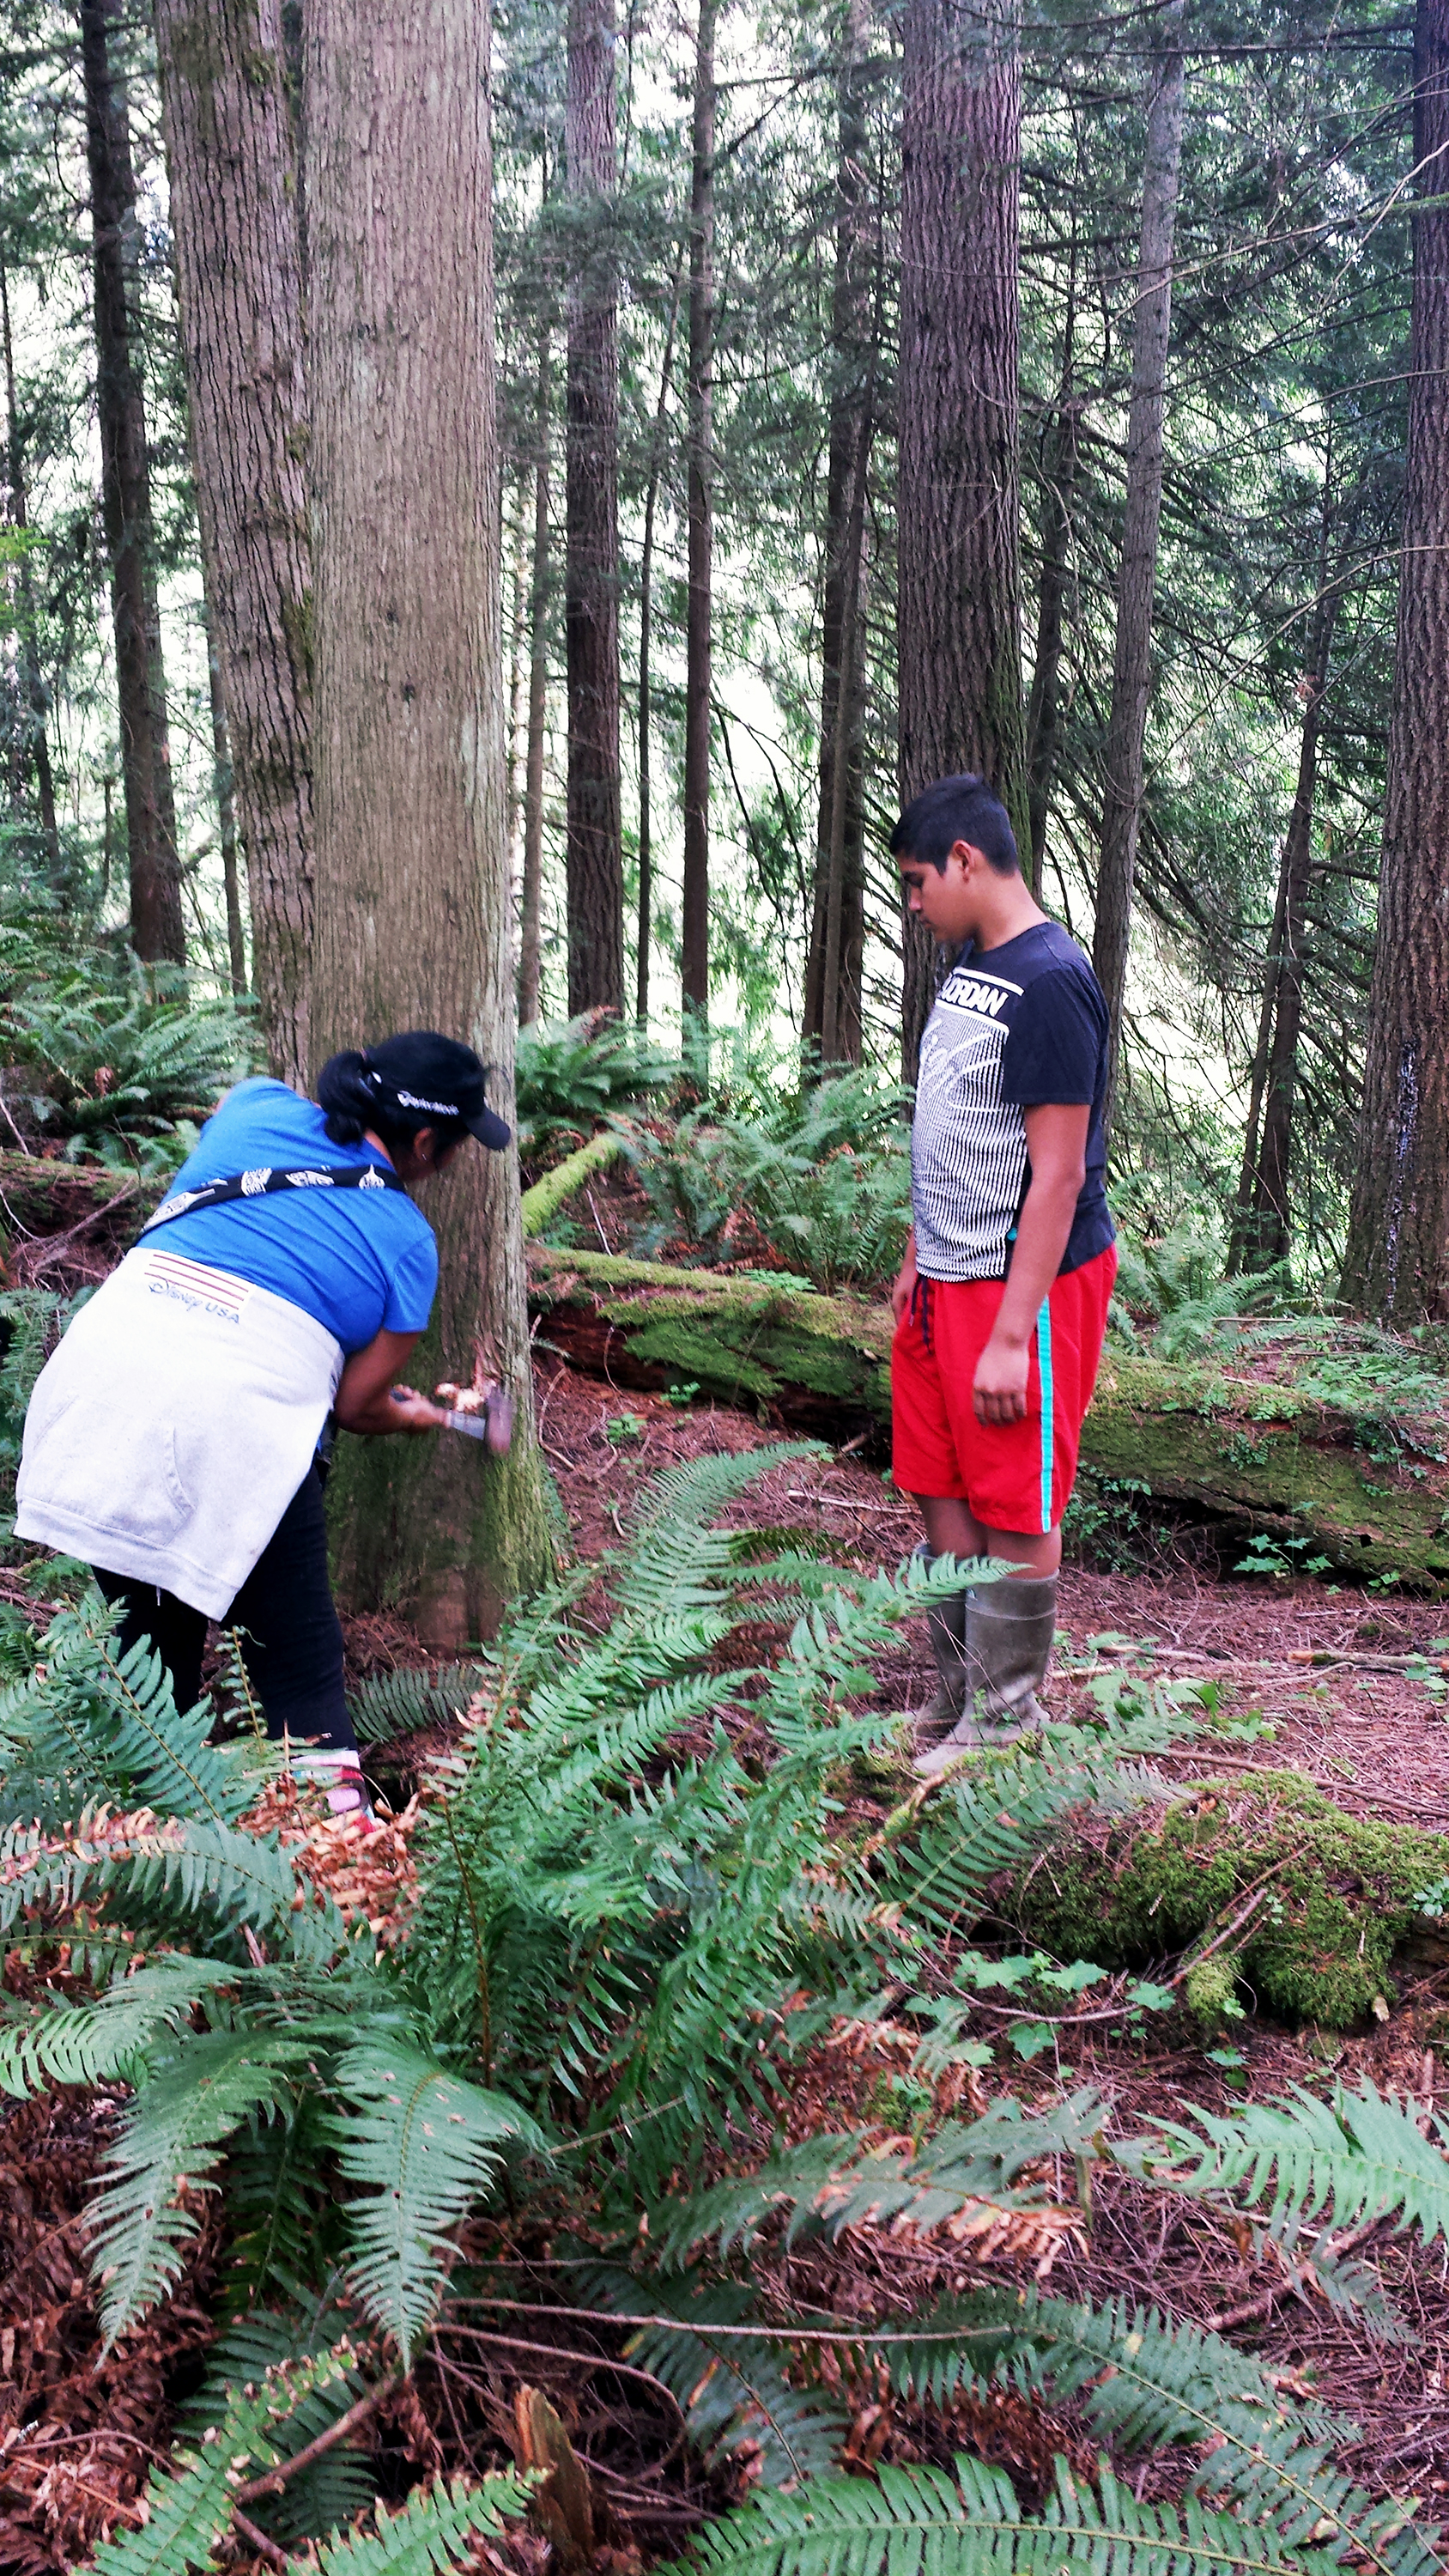 The Hunting & Wildlife Program also works with tribal youth to teach how to harvest cedar from selected private and public forests.  Photo: Brandon Nickerson & Vallentino Villaluz